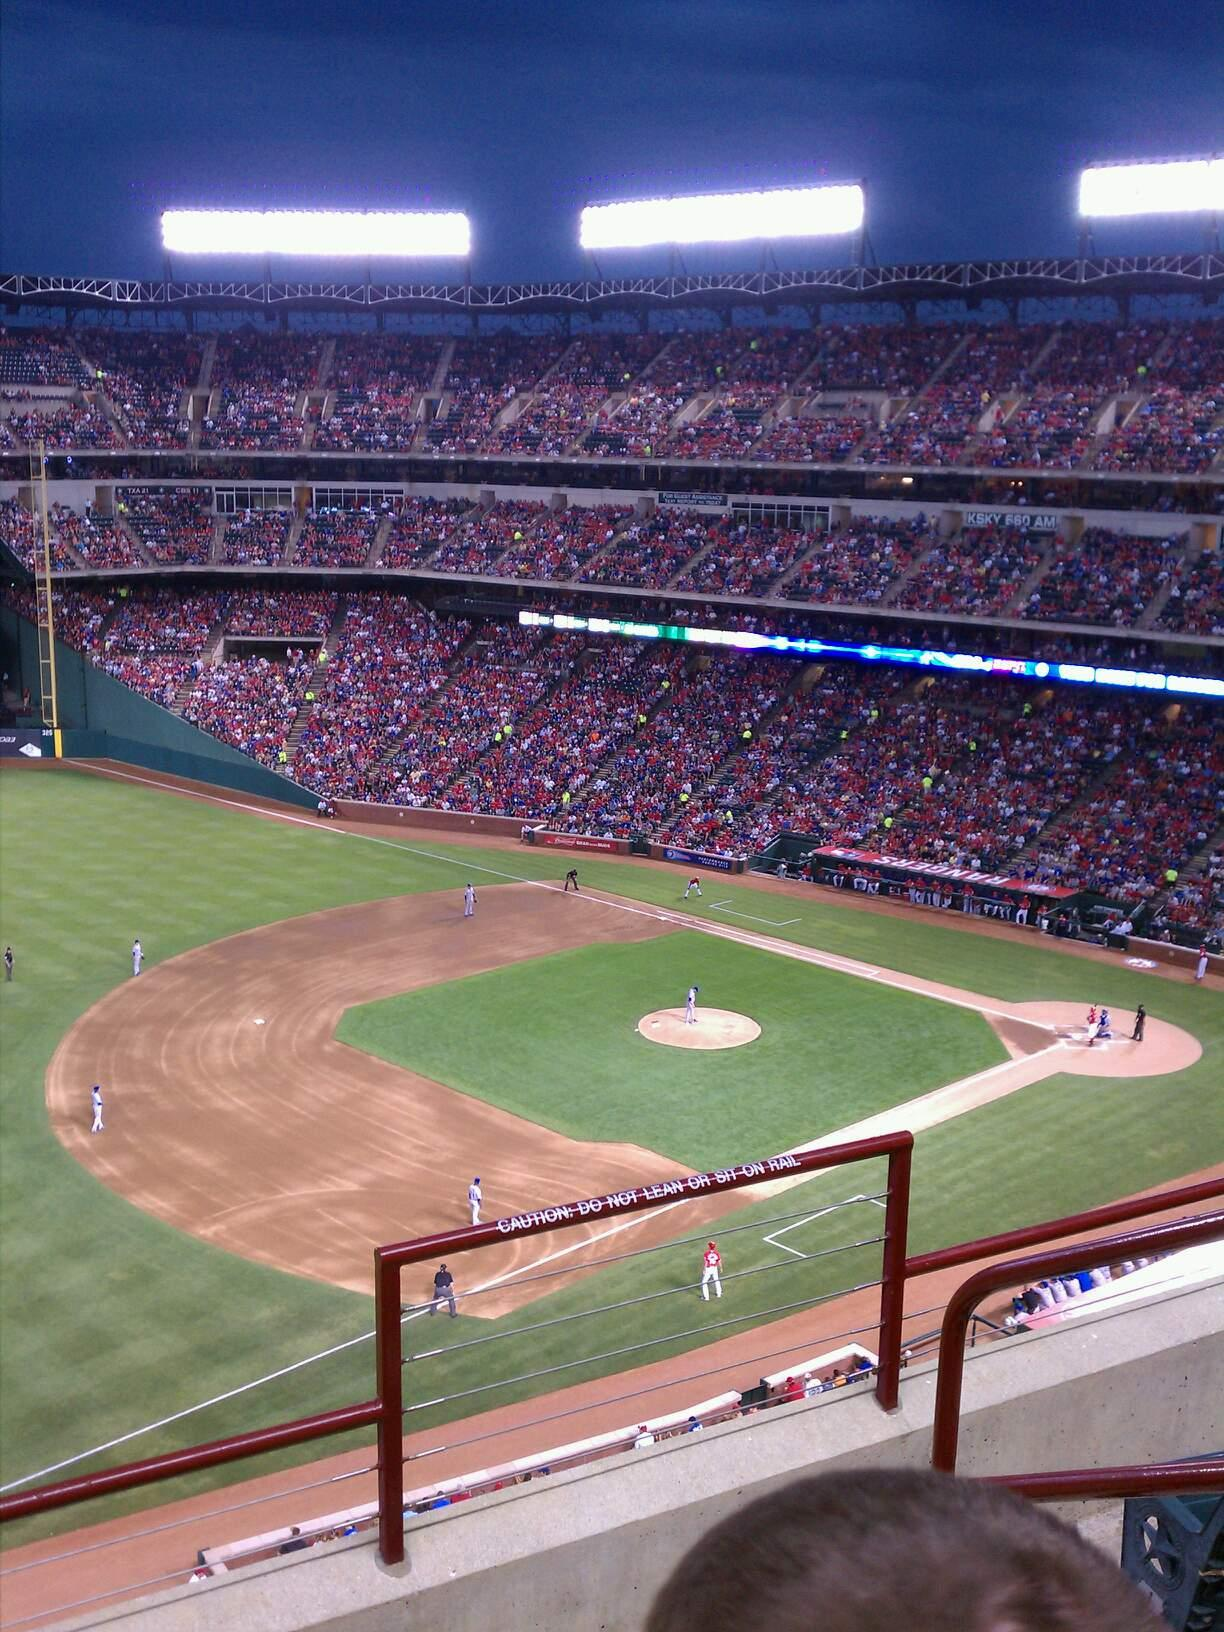 Globe Life Park in Arlington Section 314 Row 2 Seat 17